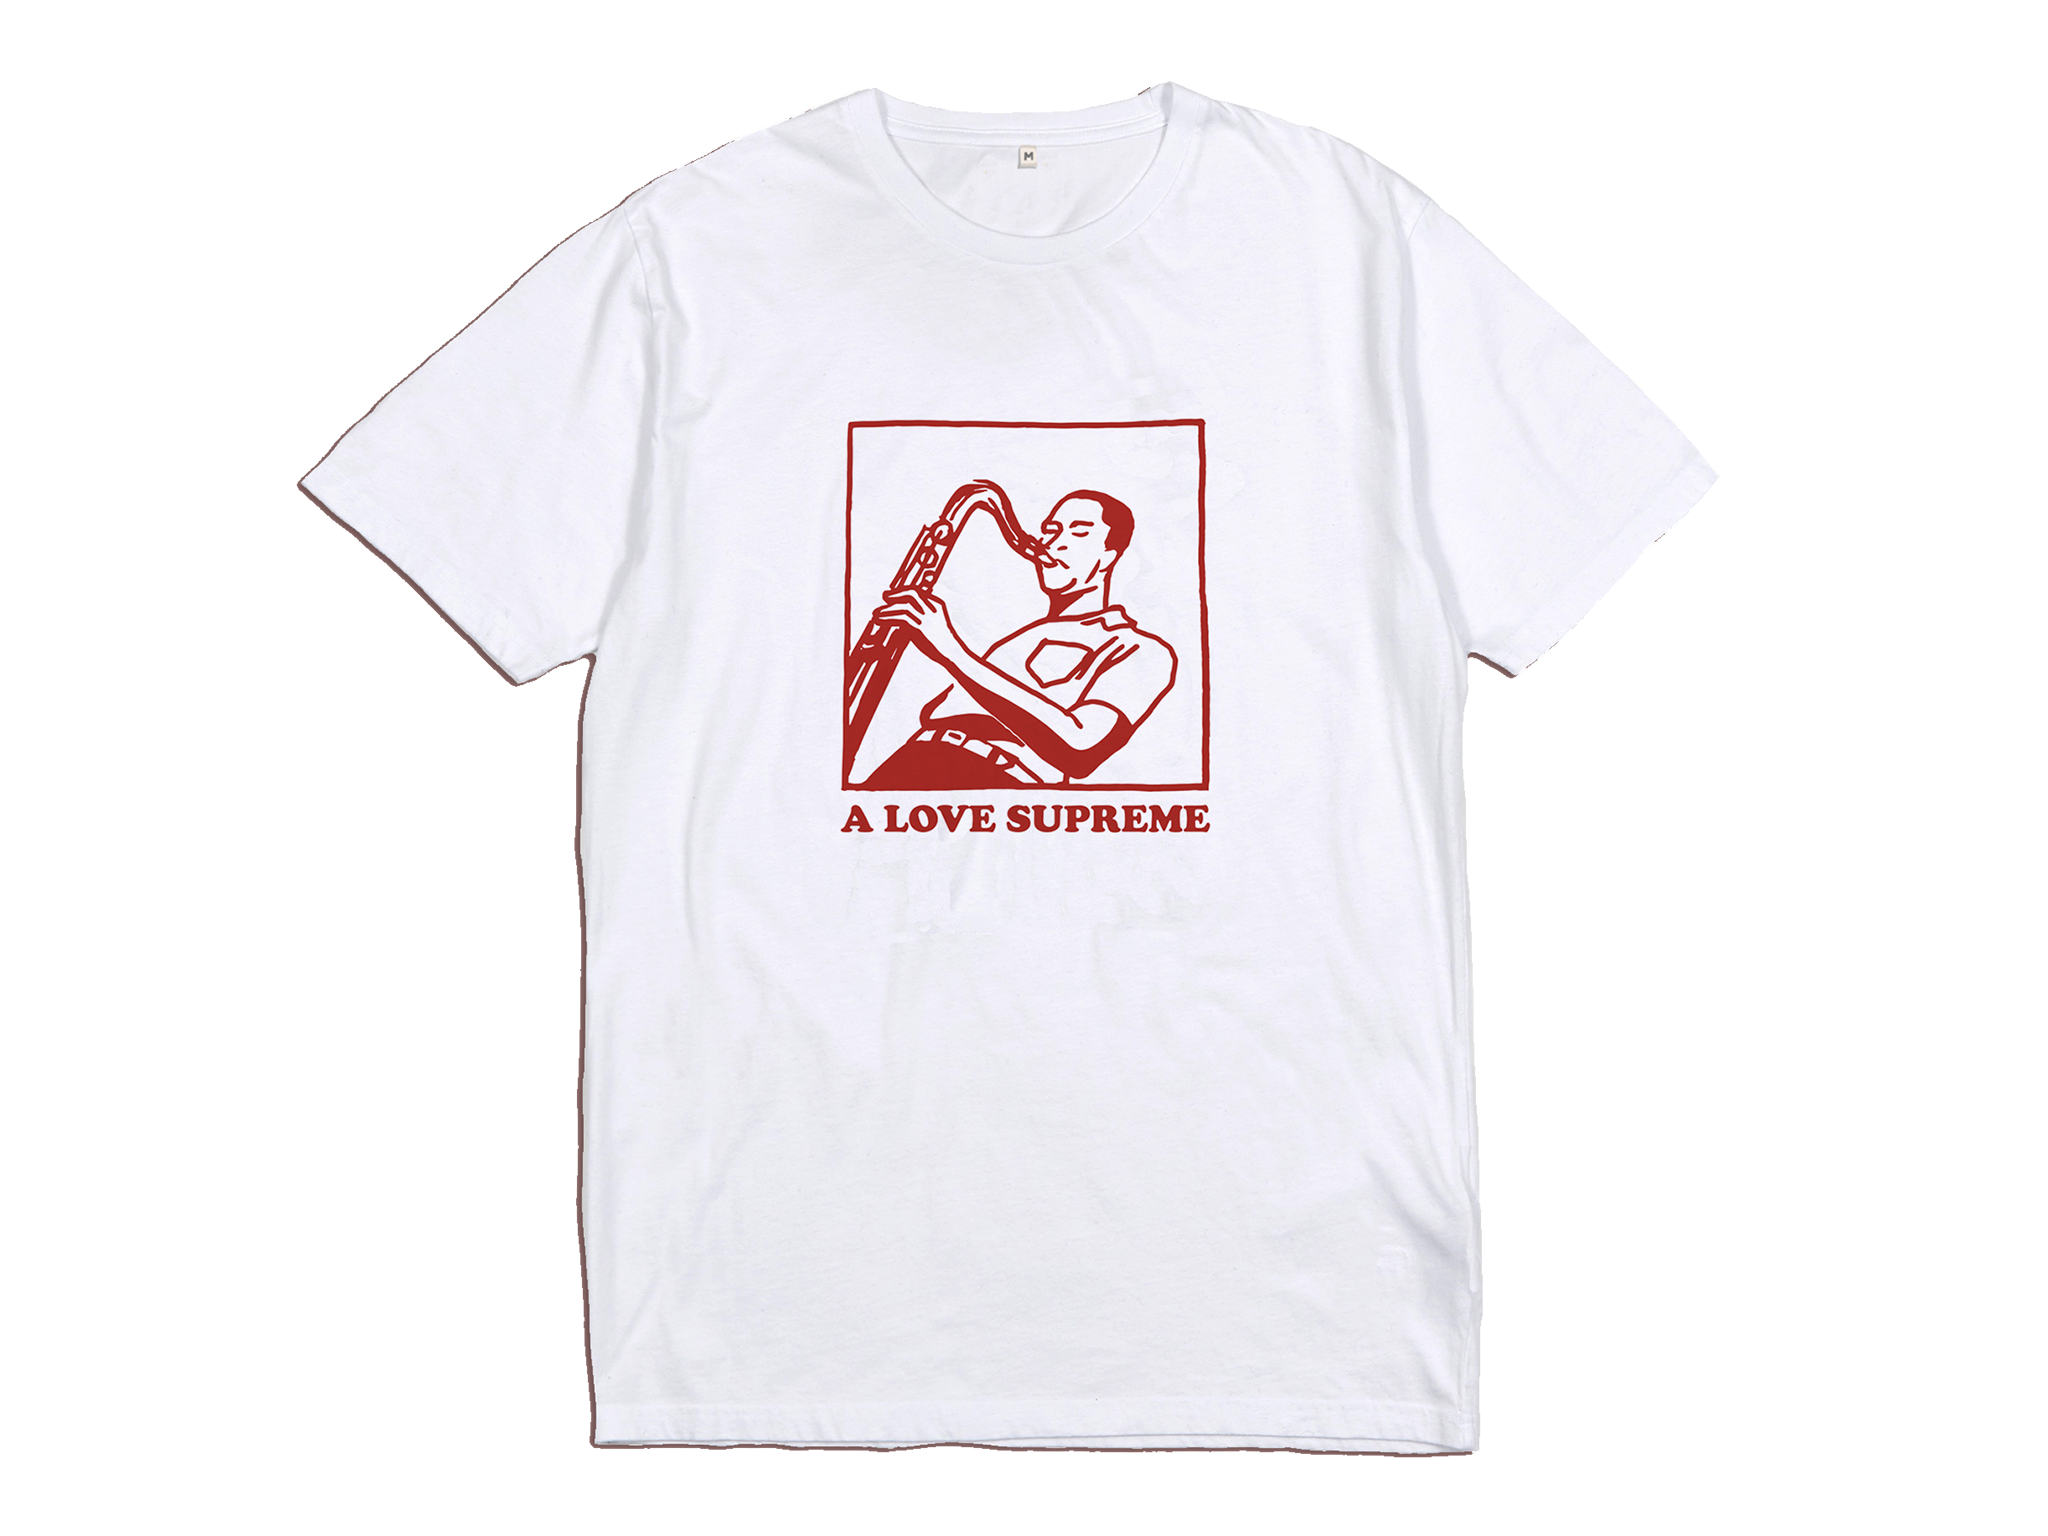 A Love Supreme T-shirt